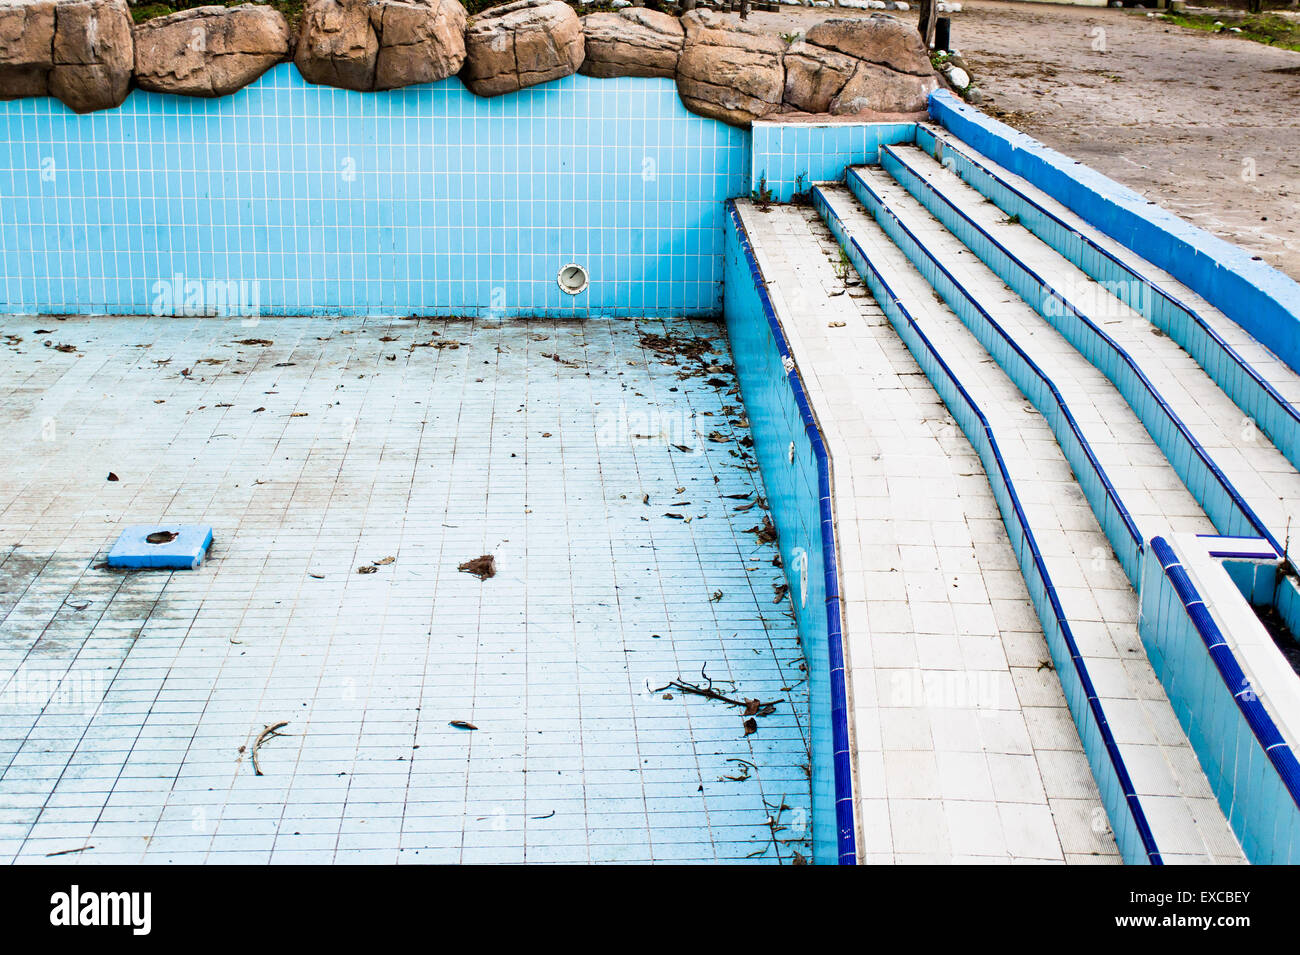 A derelict swimming pool in an abandoned amusement park - Stock Image